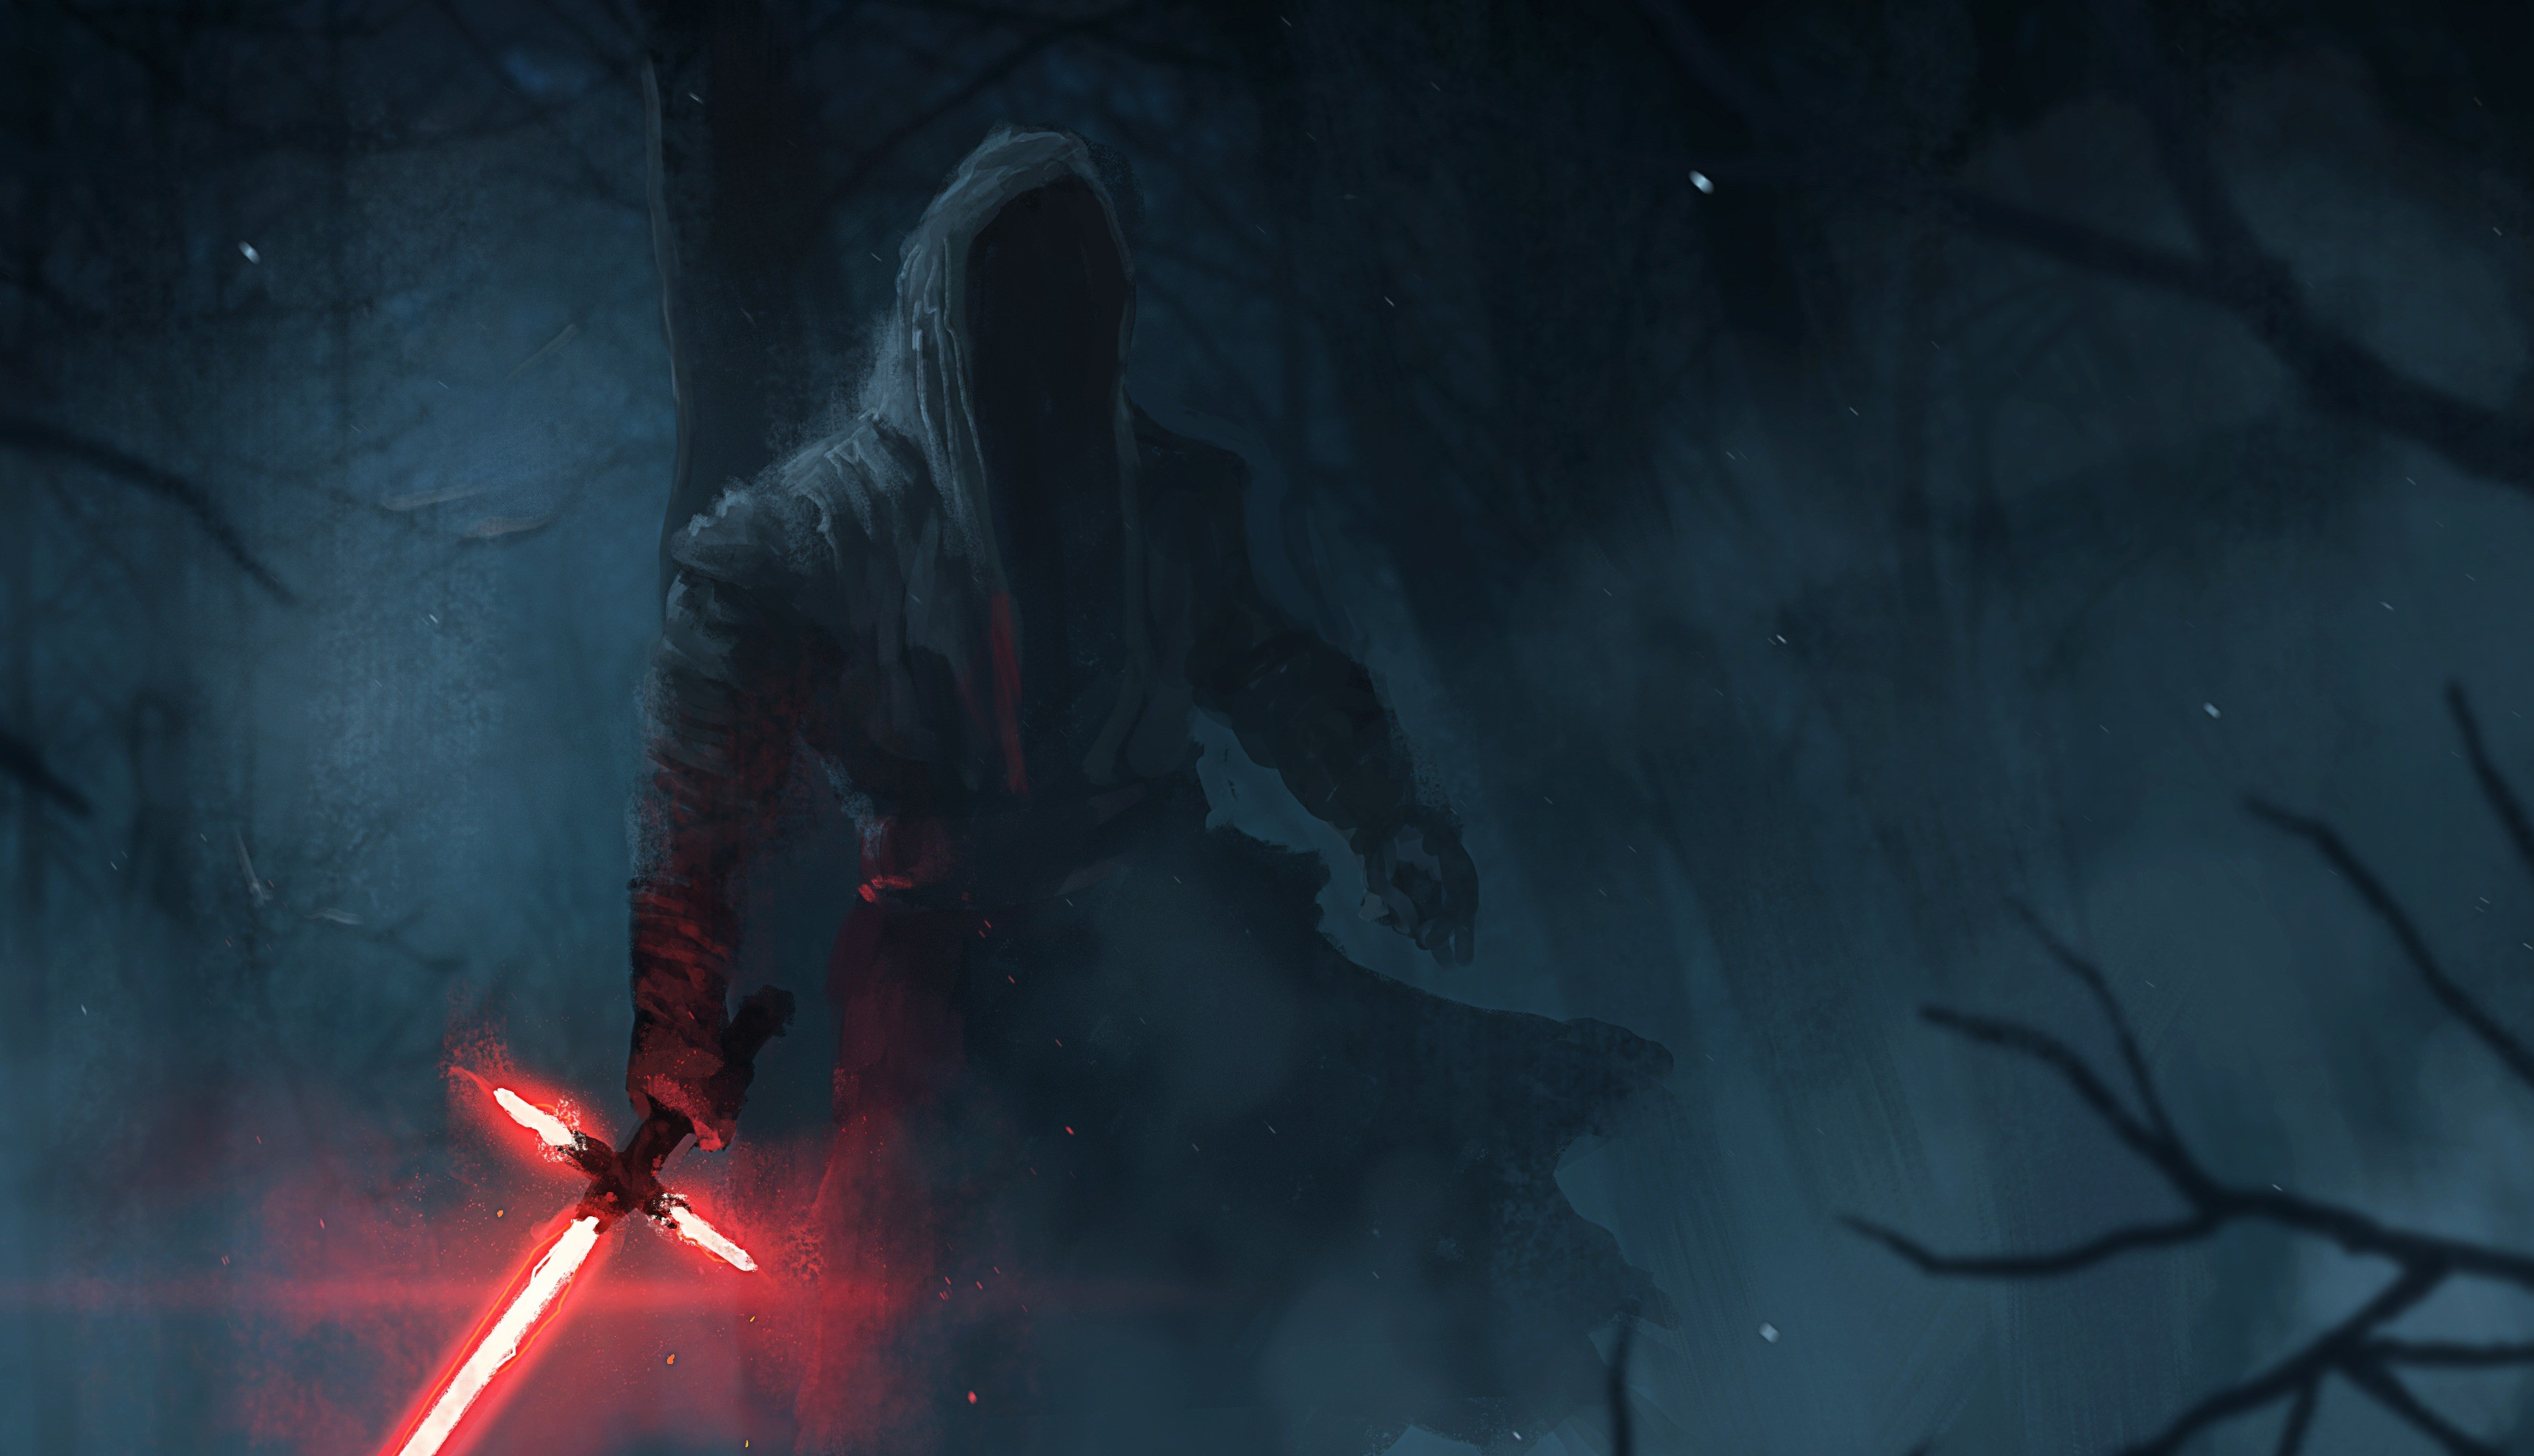 … star wars episode vii the force awakens hd wallpapers bollyberg …